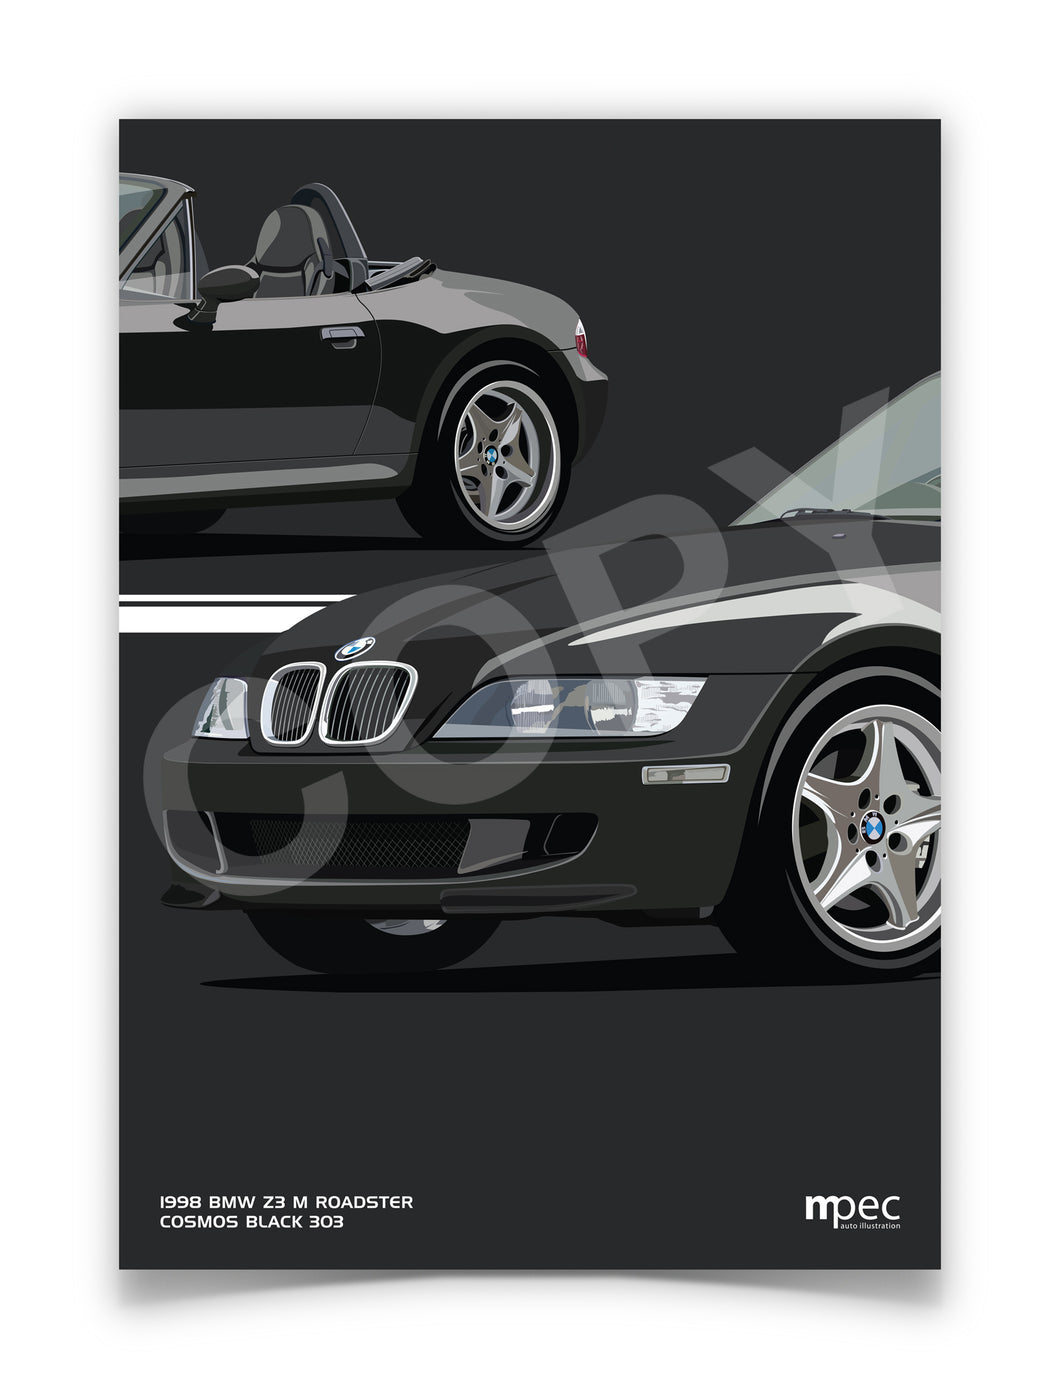 Print of 1998 BMW Z3 M Roadster in Cosmos Black 303 - Close Ups